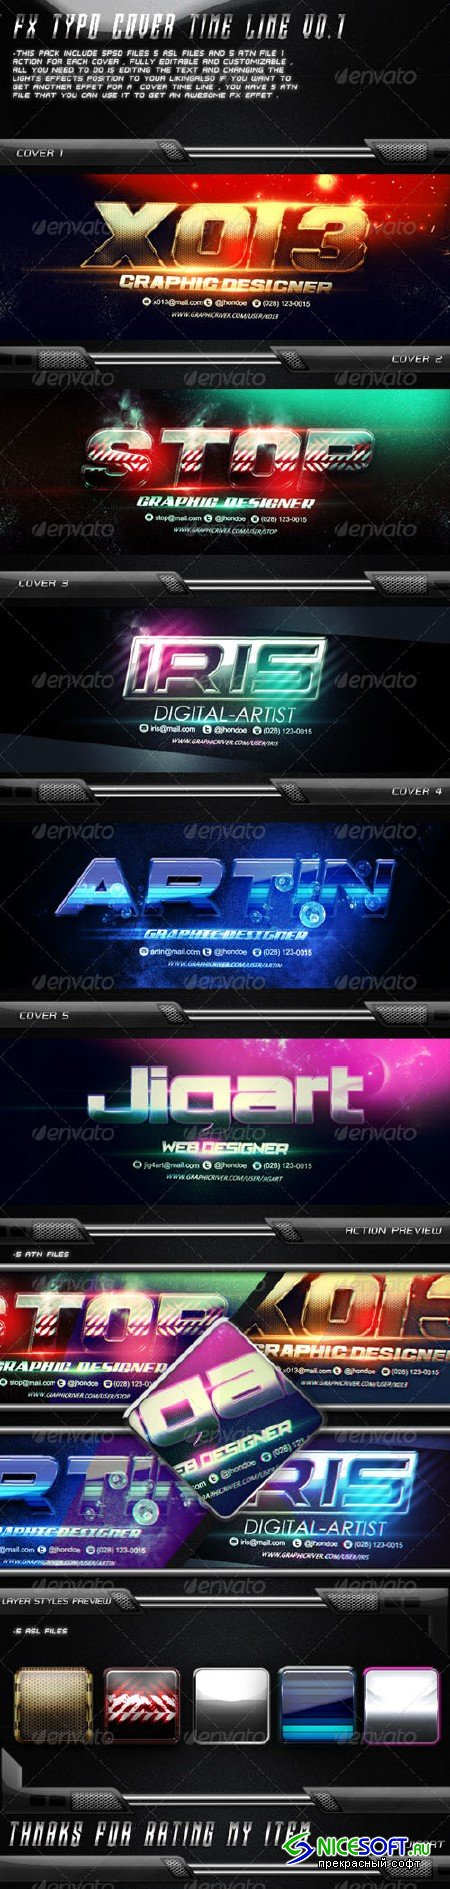 5 FX Typo Cover Time Line V0.1 - GraphicRiver 5365698